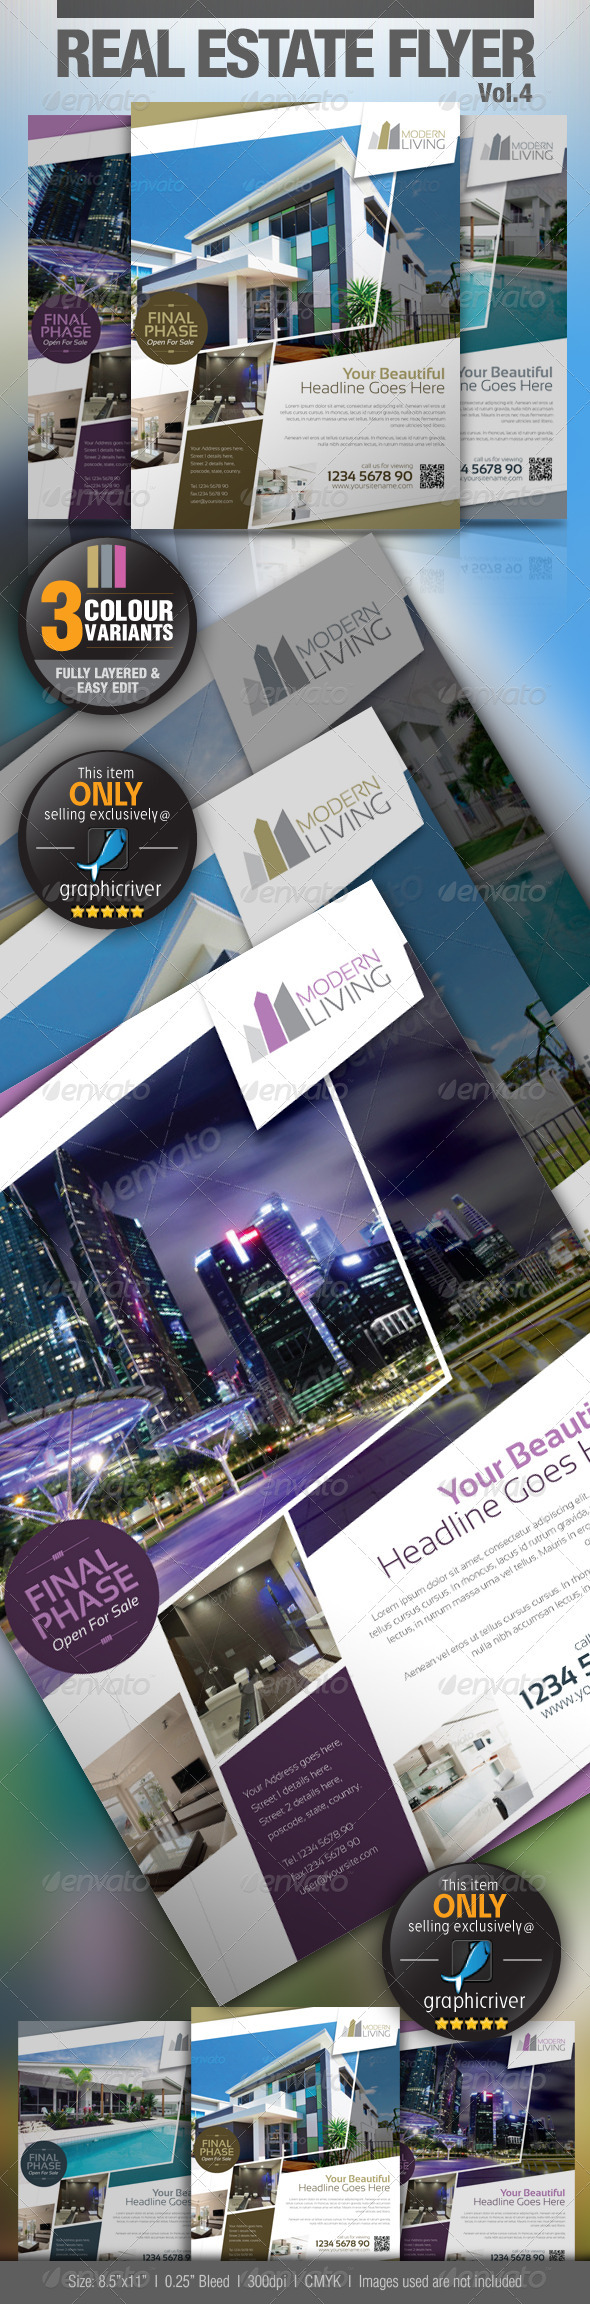 GraphicRiver Real Estate Flyer Vol.4 2879155